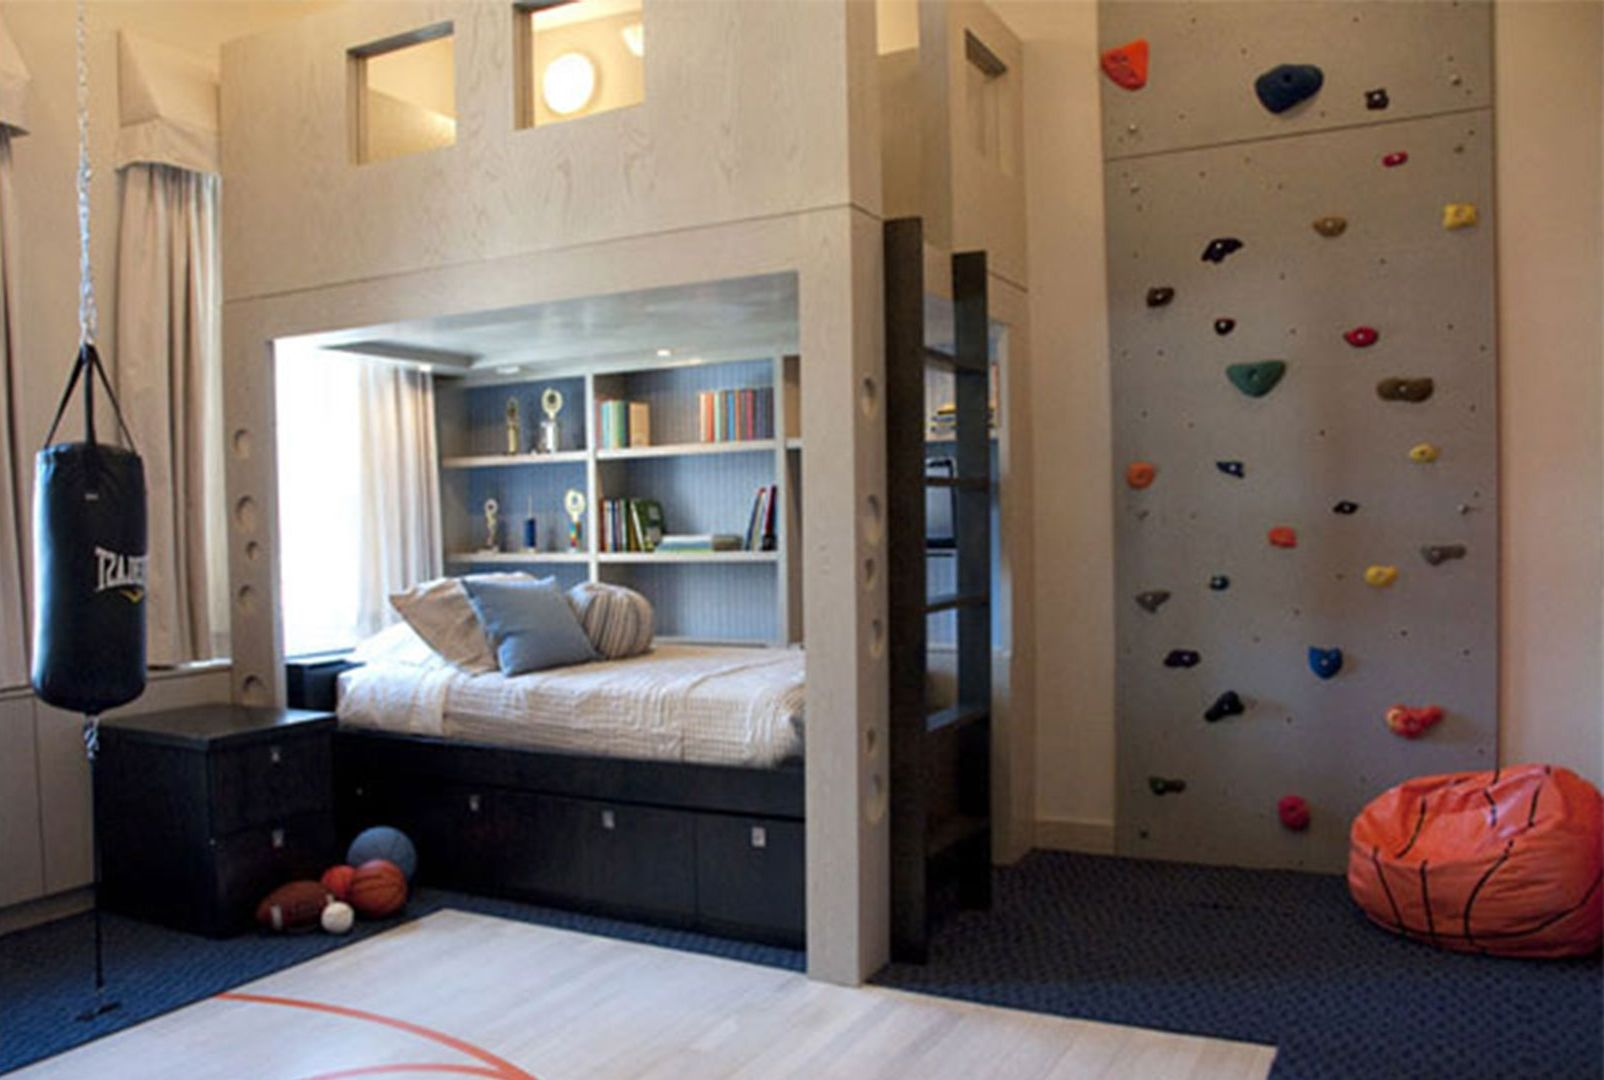 bunk beds hanging bunk beds hanging bunk bedroom bedroom ideas cool beds  bunk beds with slide ikea princess bunk beds with slide